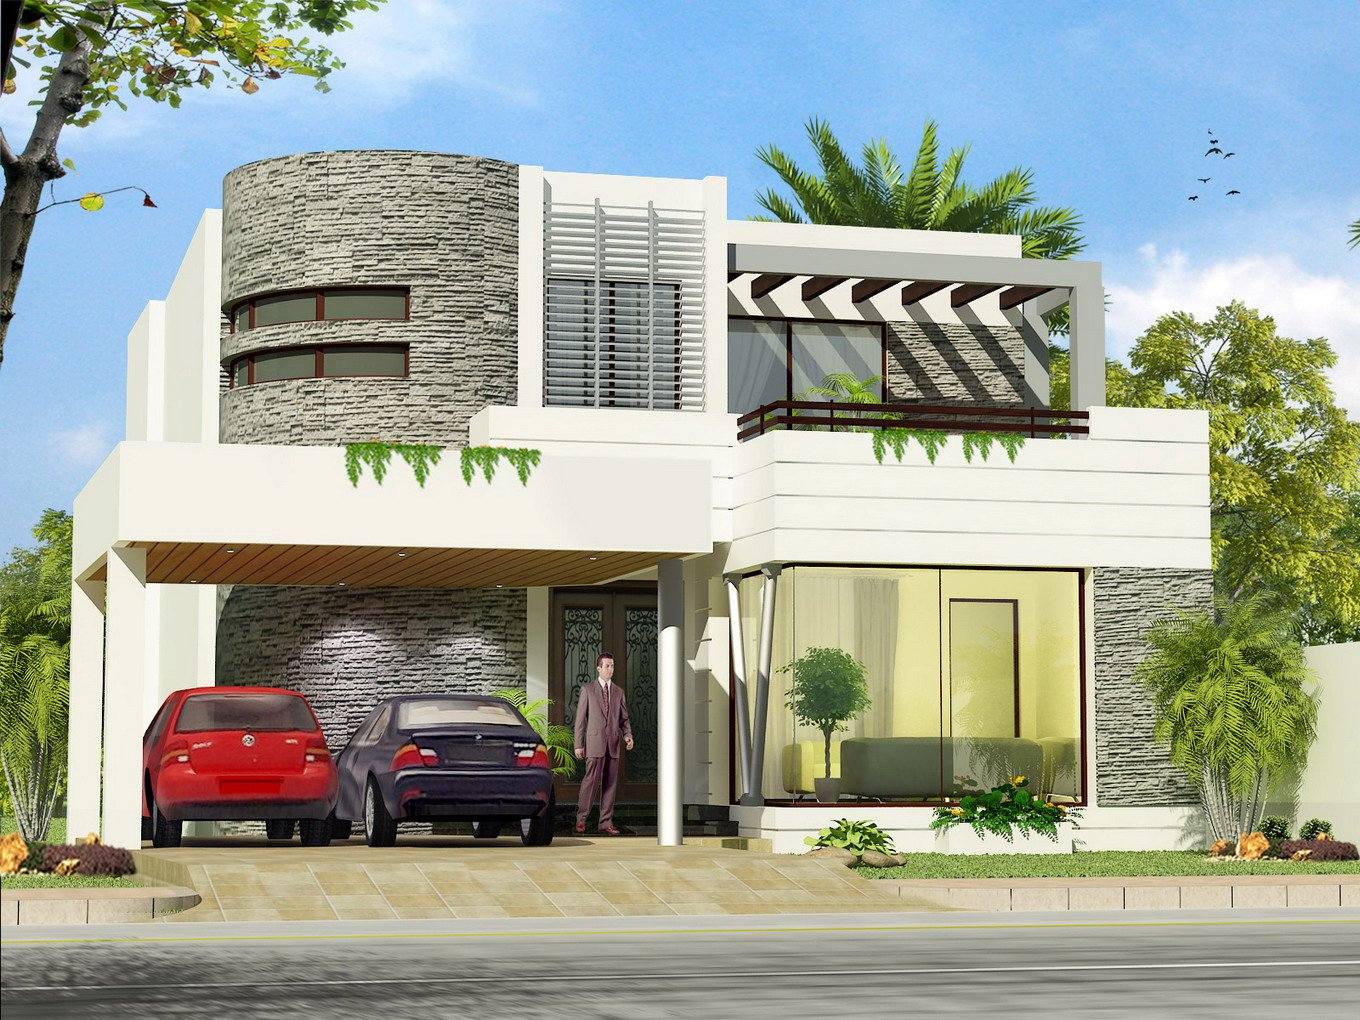 Pakistan Front Elevation of1360 × 1020 - 355k - jpgfrontelevation.blogspo...1 Kanal Beautiful House Front1444 × 960 - 509k - jpgkaisrani.blogspot.comhome - Front Elevation1600 × 1200 - 184k - jpgfrontelevation.blogspo...3D Front Elevation: Dimetia1200 × 900 - 177k - jpgnationalestate.com.pkBeautiful front elevation near640 × 480 - 38k - jpgfrontelevation.blogspo...India House Front Elevation1600 × 933 - 337k - jpgearthlink.com.pkFront Elevation1280 × 960 - 188k - jpgfrontelevation.blogspo...India House Front Elevation625 × 469 - 37k - jpgmultan.olx.com.pkPictures of 1, 2 , Kanal House625 × 469 - 47k - jpgfrontelevation.blogspo...front Elevation Of House960 × 933 - 577k - jpgislamabad.olx.com.pkPictures of 3D Front Elevation625 × 562 - 59k - jpgfrontelevation.blogspo...Pakistan 3d Front elevation of640 × 406 - 68k - jpgfrontelevation.blogspo...India Pakistan House Design1600 × 1200 - 240k - jpgrealestate.classifieds...Pakistan520 × 390 - 24kislamabad.olx.com.pkfront elevation of phase 3625 × 469 - 36k - jpgfrontelevation.blogspo...Home 3D Front Elevation720 × 540 - 126k - jpgw.apnirehaish.comfront elevation600 × 600 - 260k - jpgapnirehaish.comfront elevation. click here600 × 600 - 194k - jpgislamabad.olx.com.pk10 marla house for sale in pwd625 × 351 - 28k - jpgkaisrani.blogspot.comhome - Front Elevation